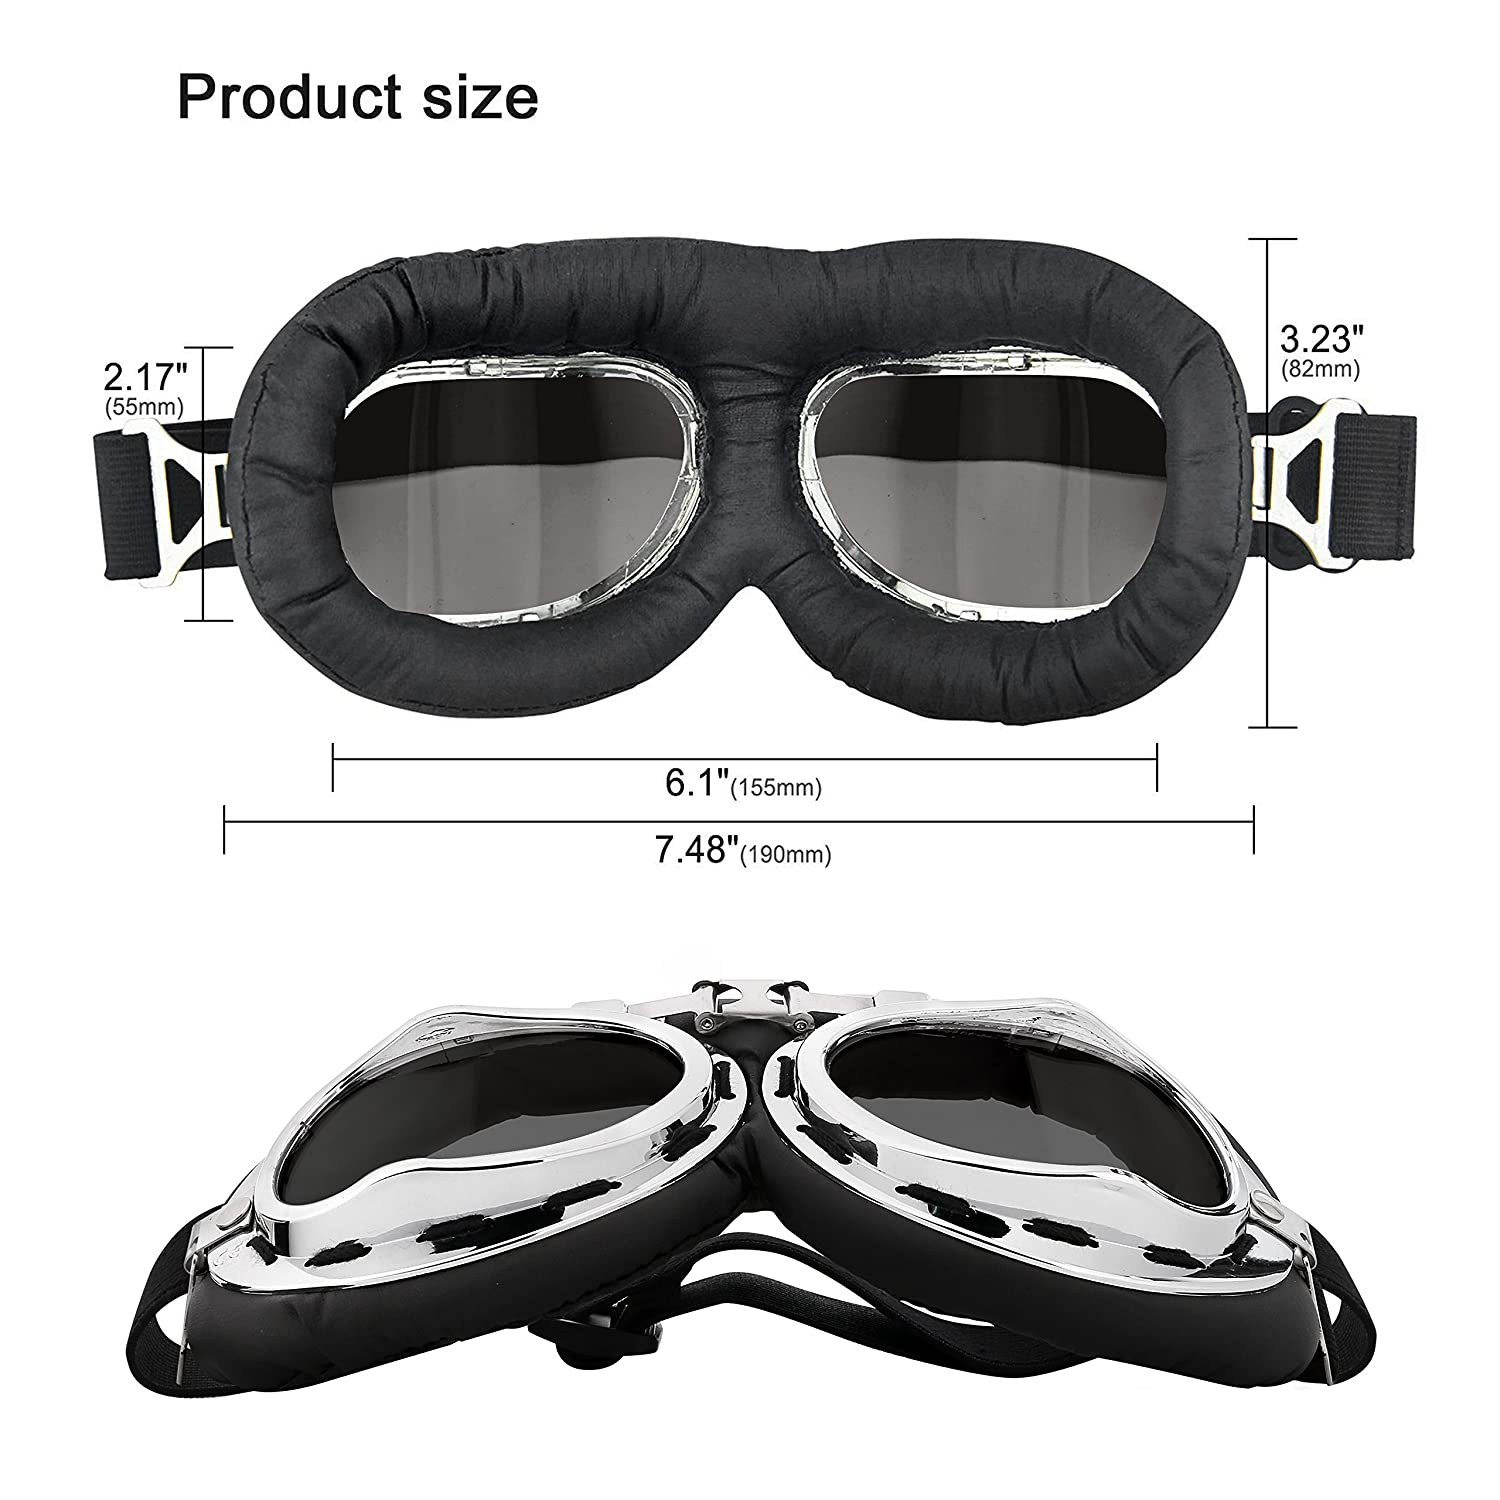 Speedo Speed Socket 2.0 Mirrored Swim Goggle-One Size Black/Silver 12-Pack